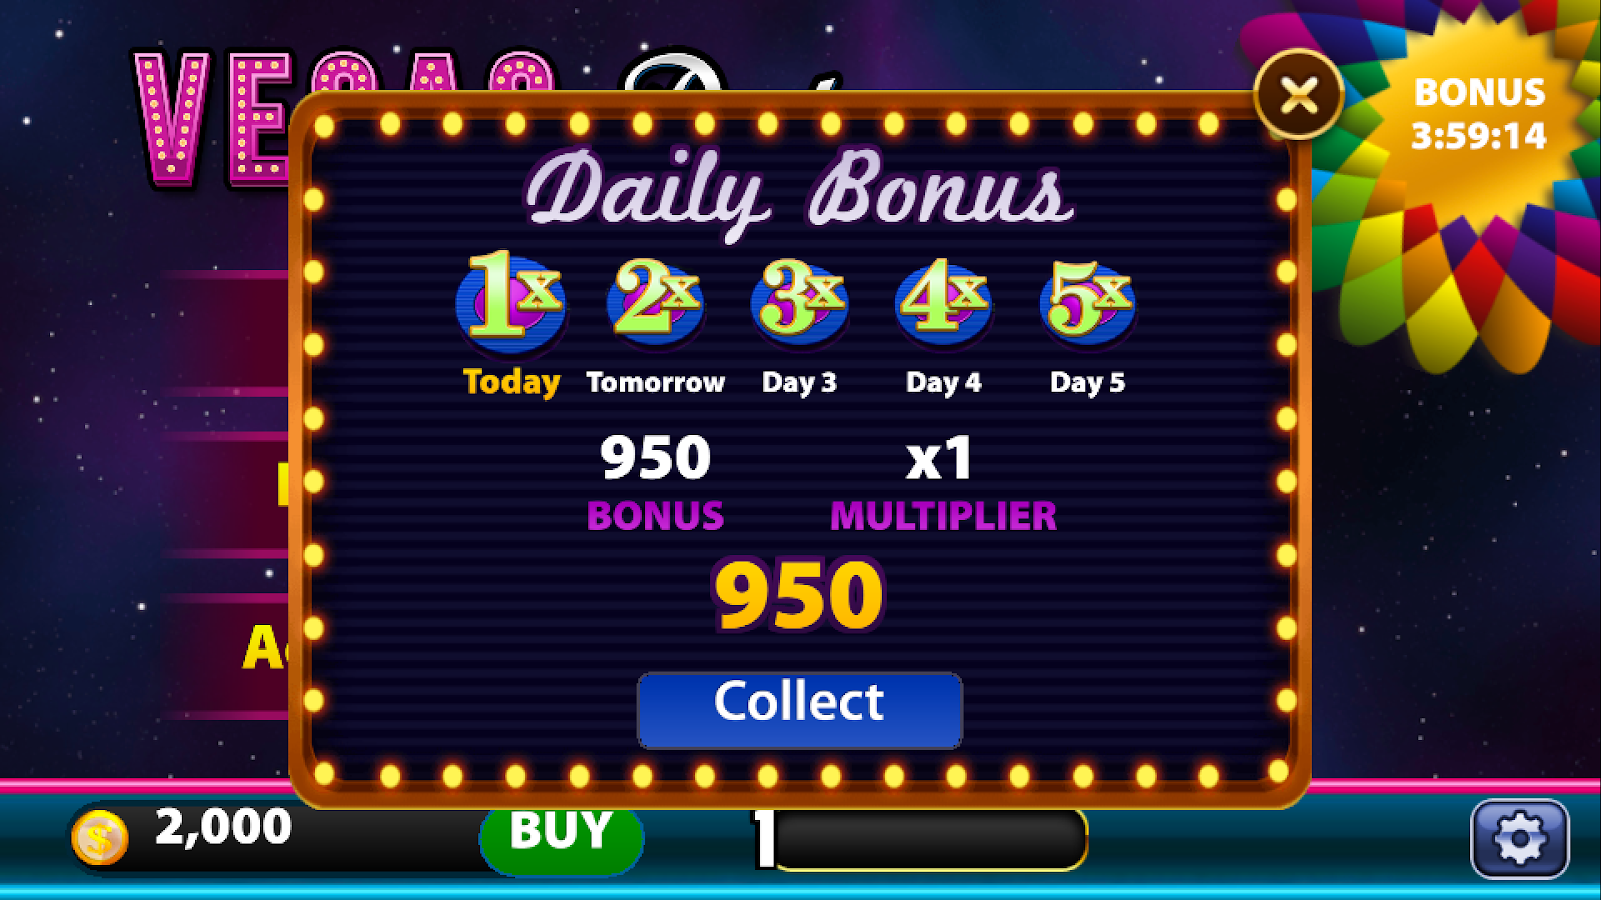 Wheel of fortune slot machine games for free